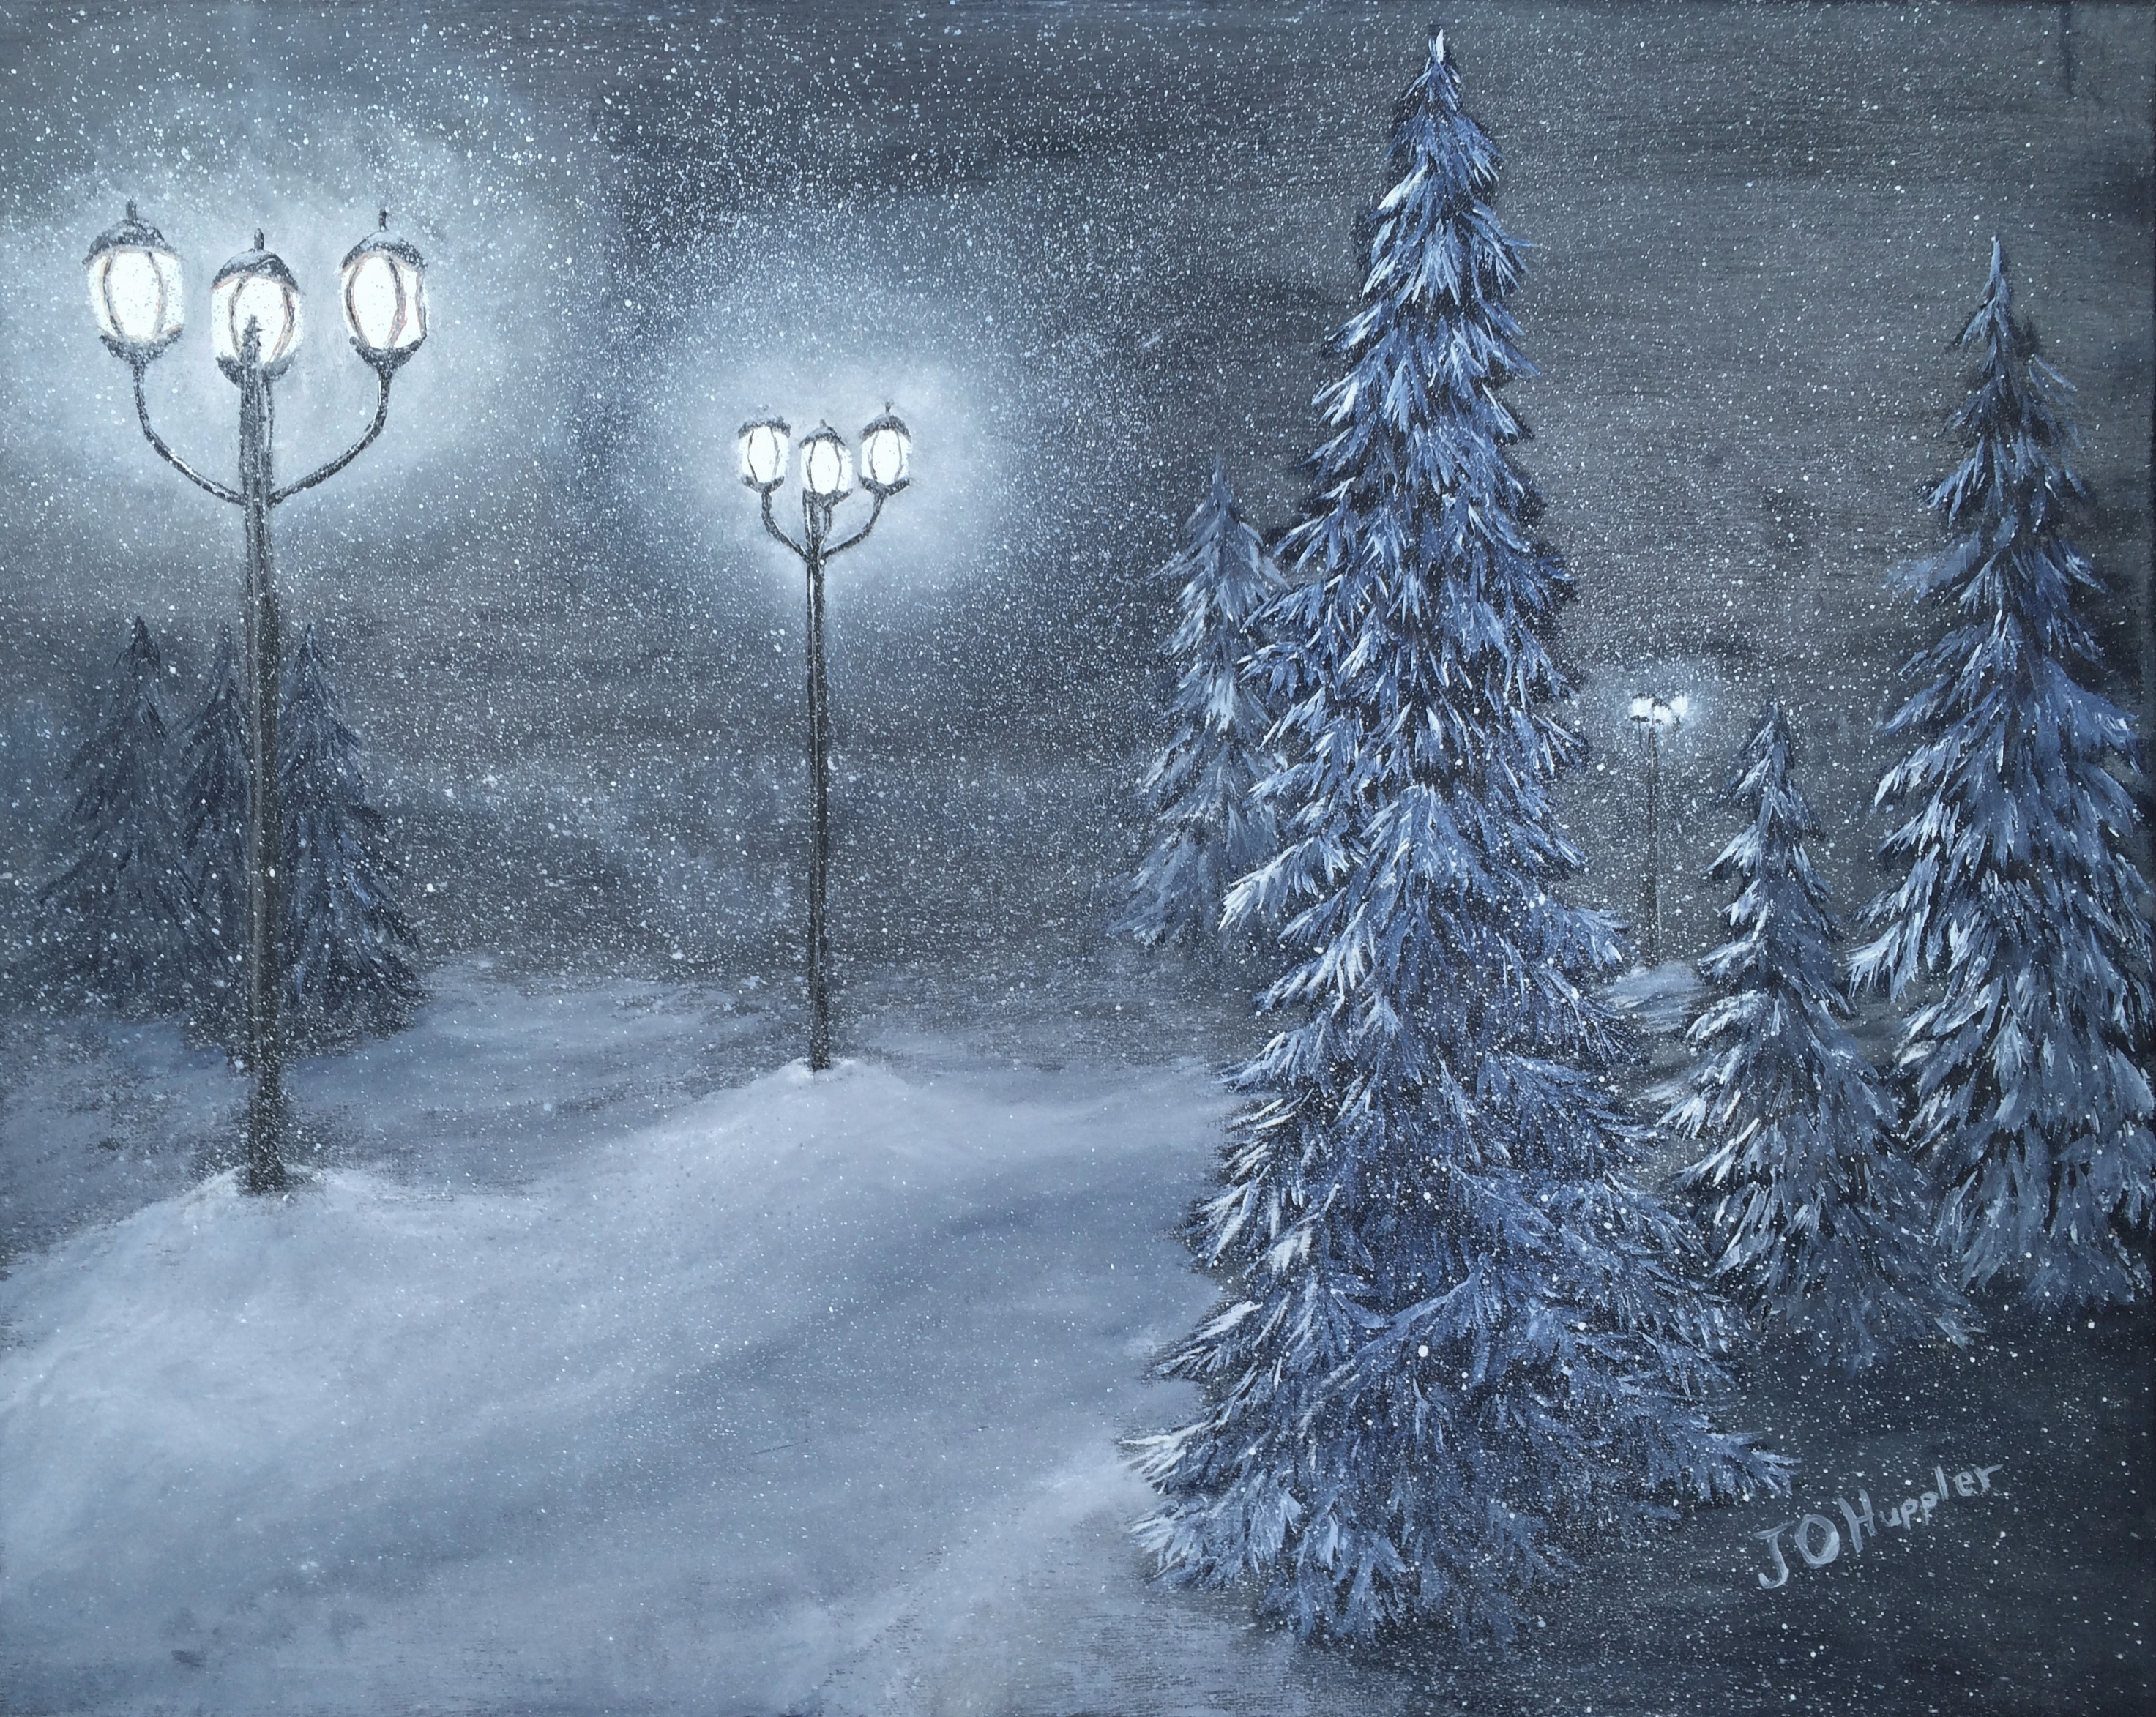 Street Light At Night Painting Winter Woodlands J O Huppler